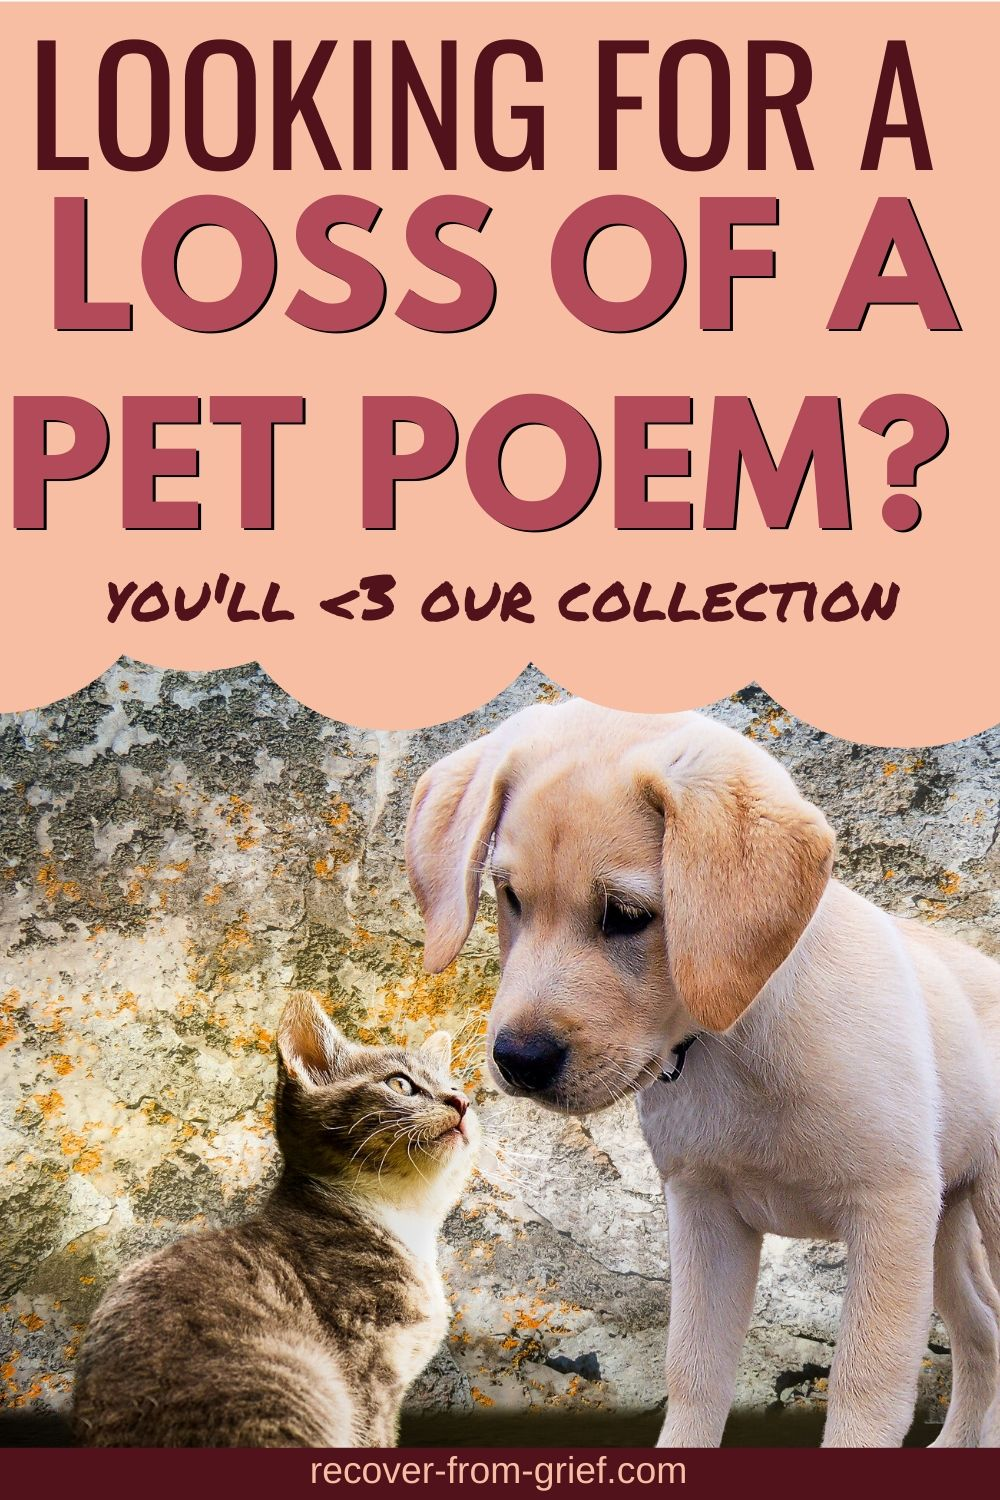 Looking for a loss of a pet poem? You'll love my collections. Come read one or more of the poems here and find peace. #petloss #petlosspoem #poems